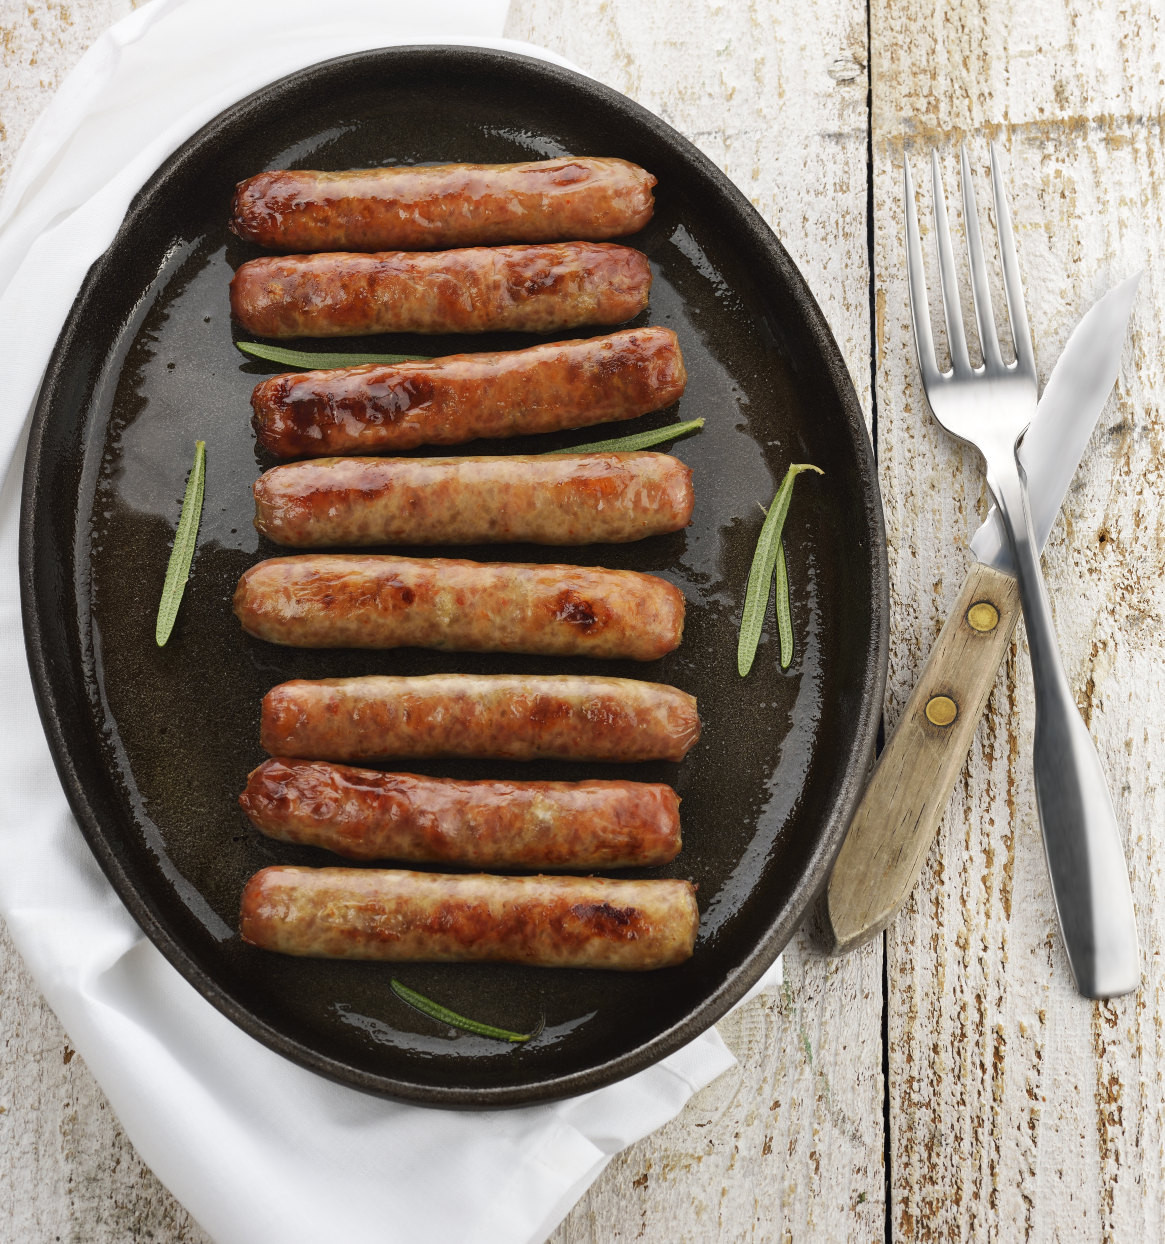 Pork Breakfast Links